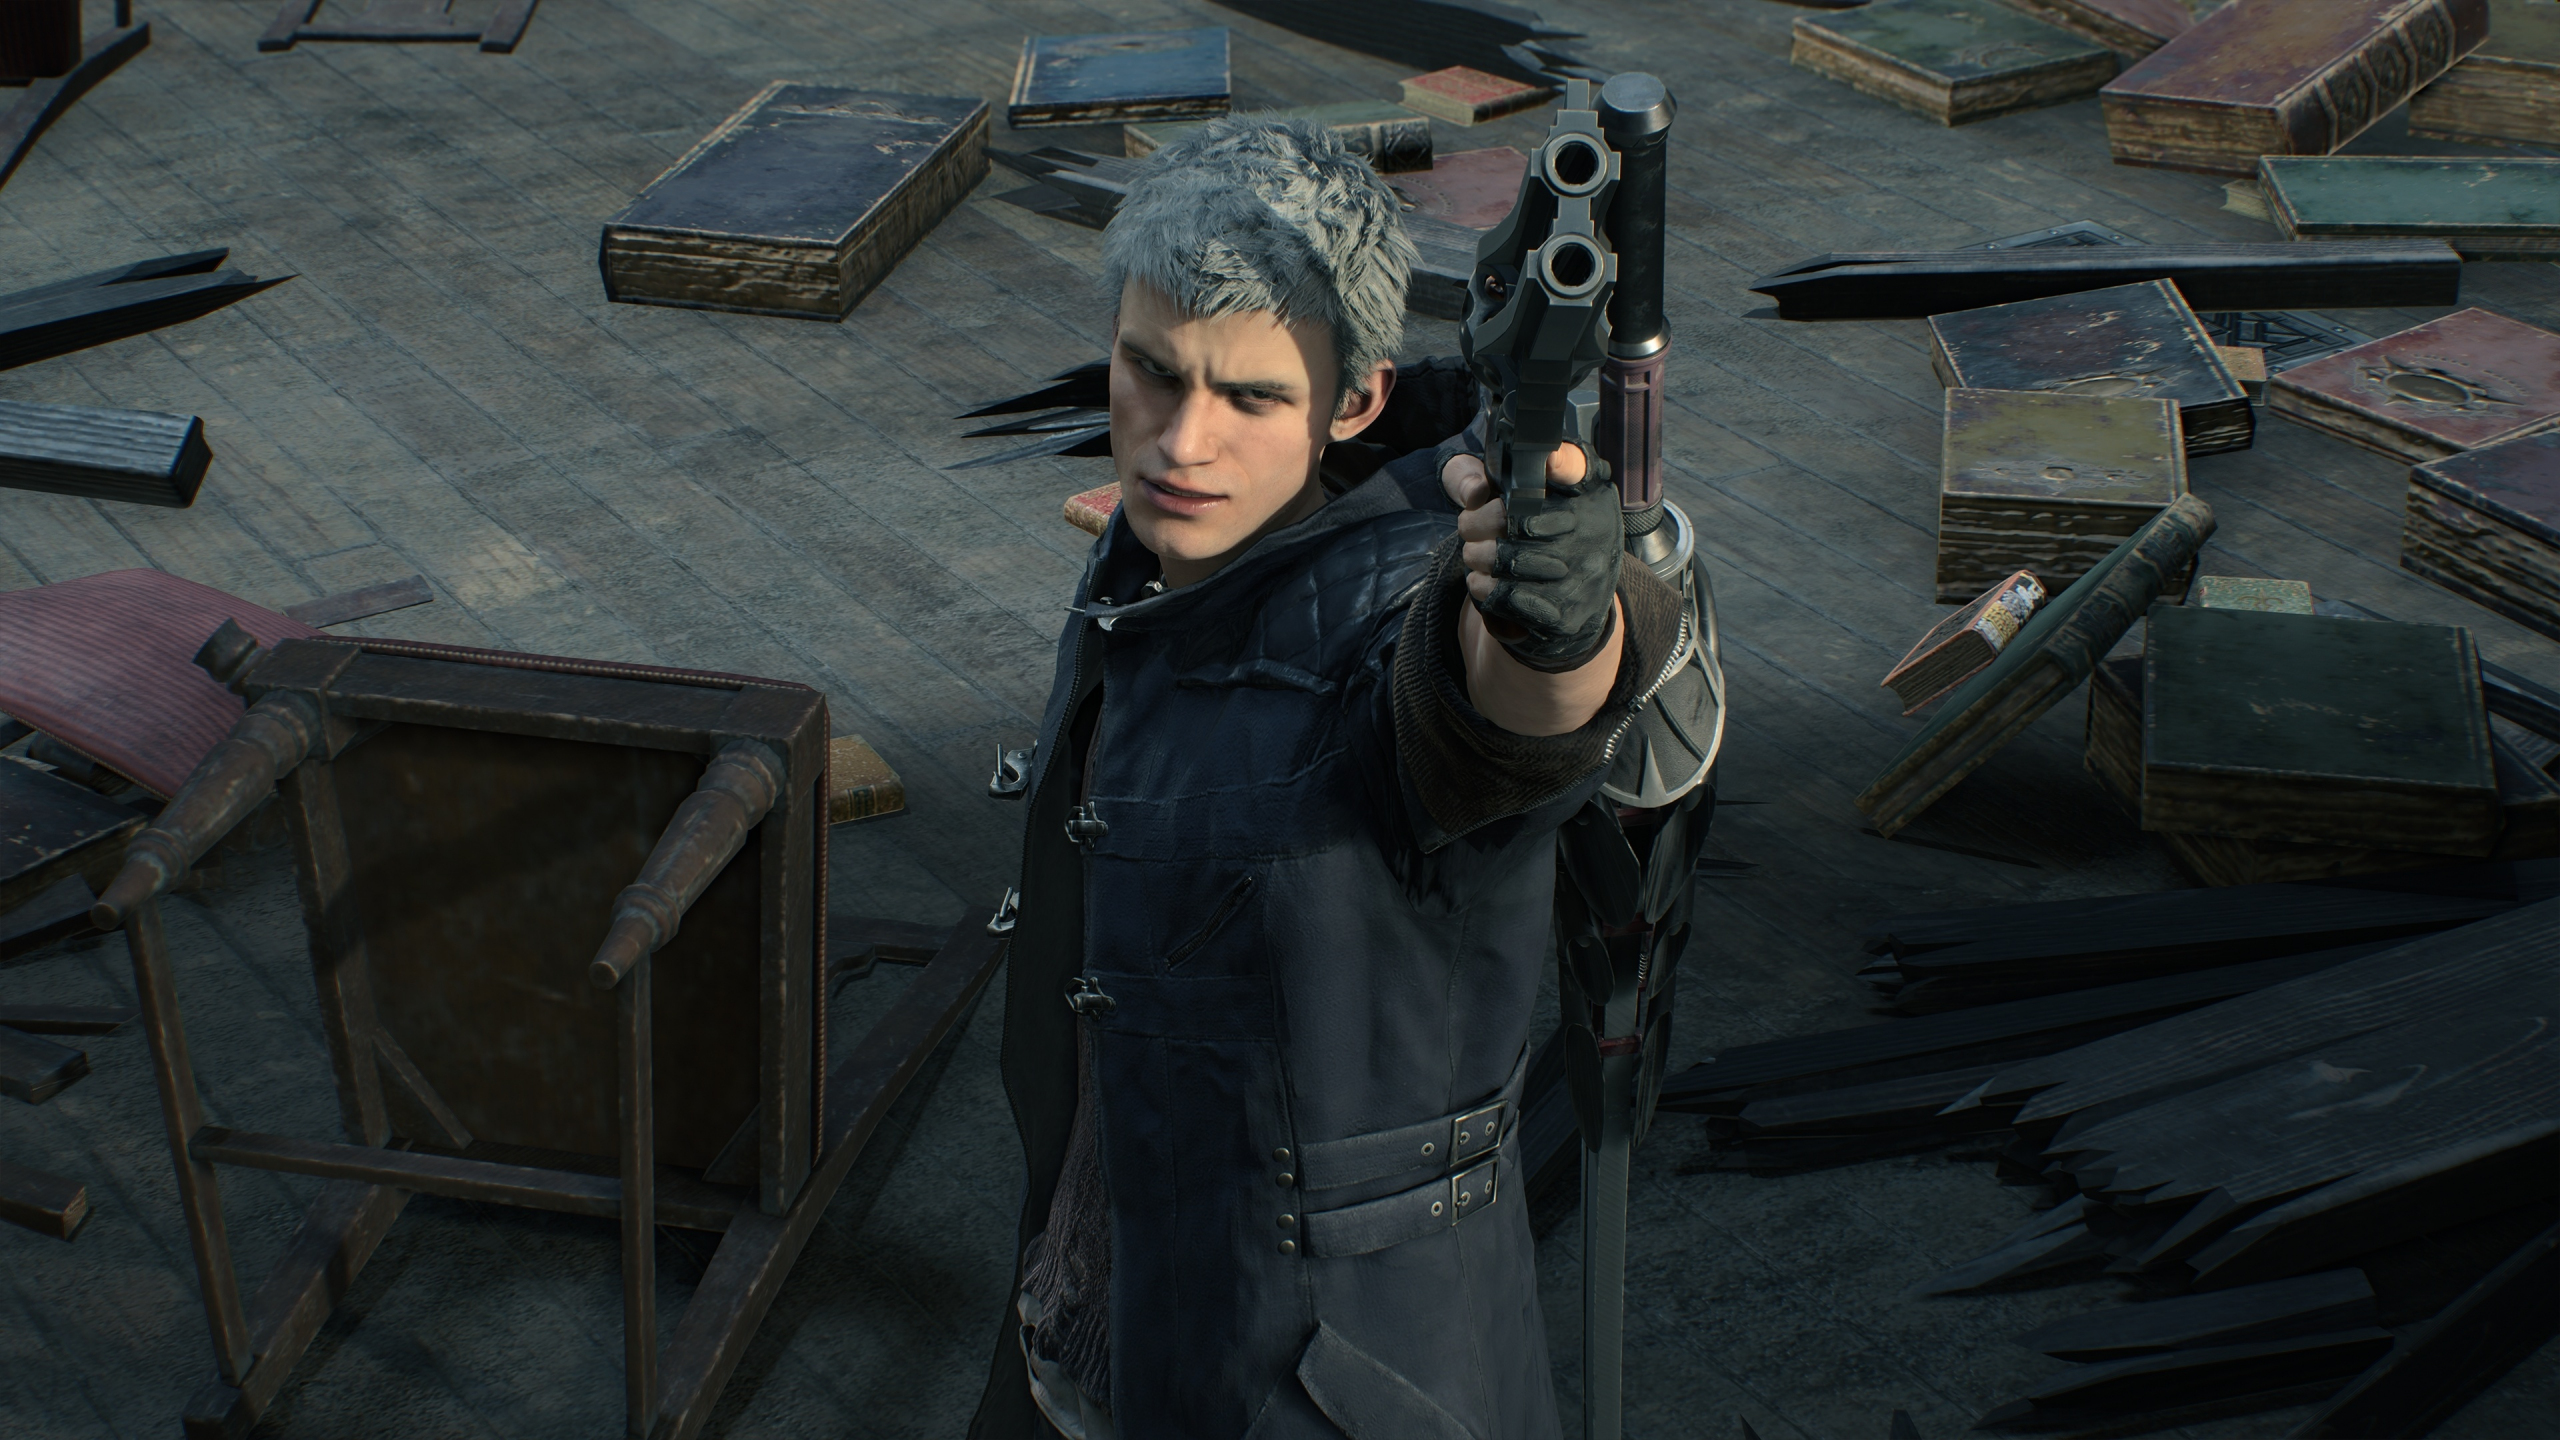 Download 2560x1440 Wallpaper Devil May Cry 5 Video Game